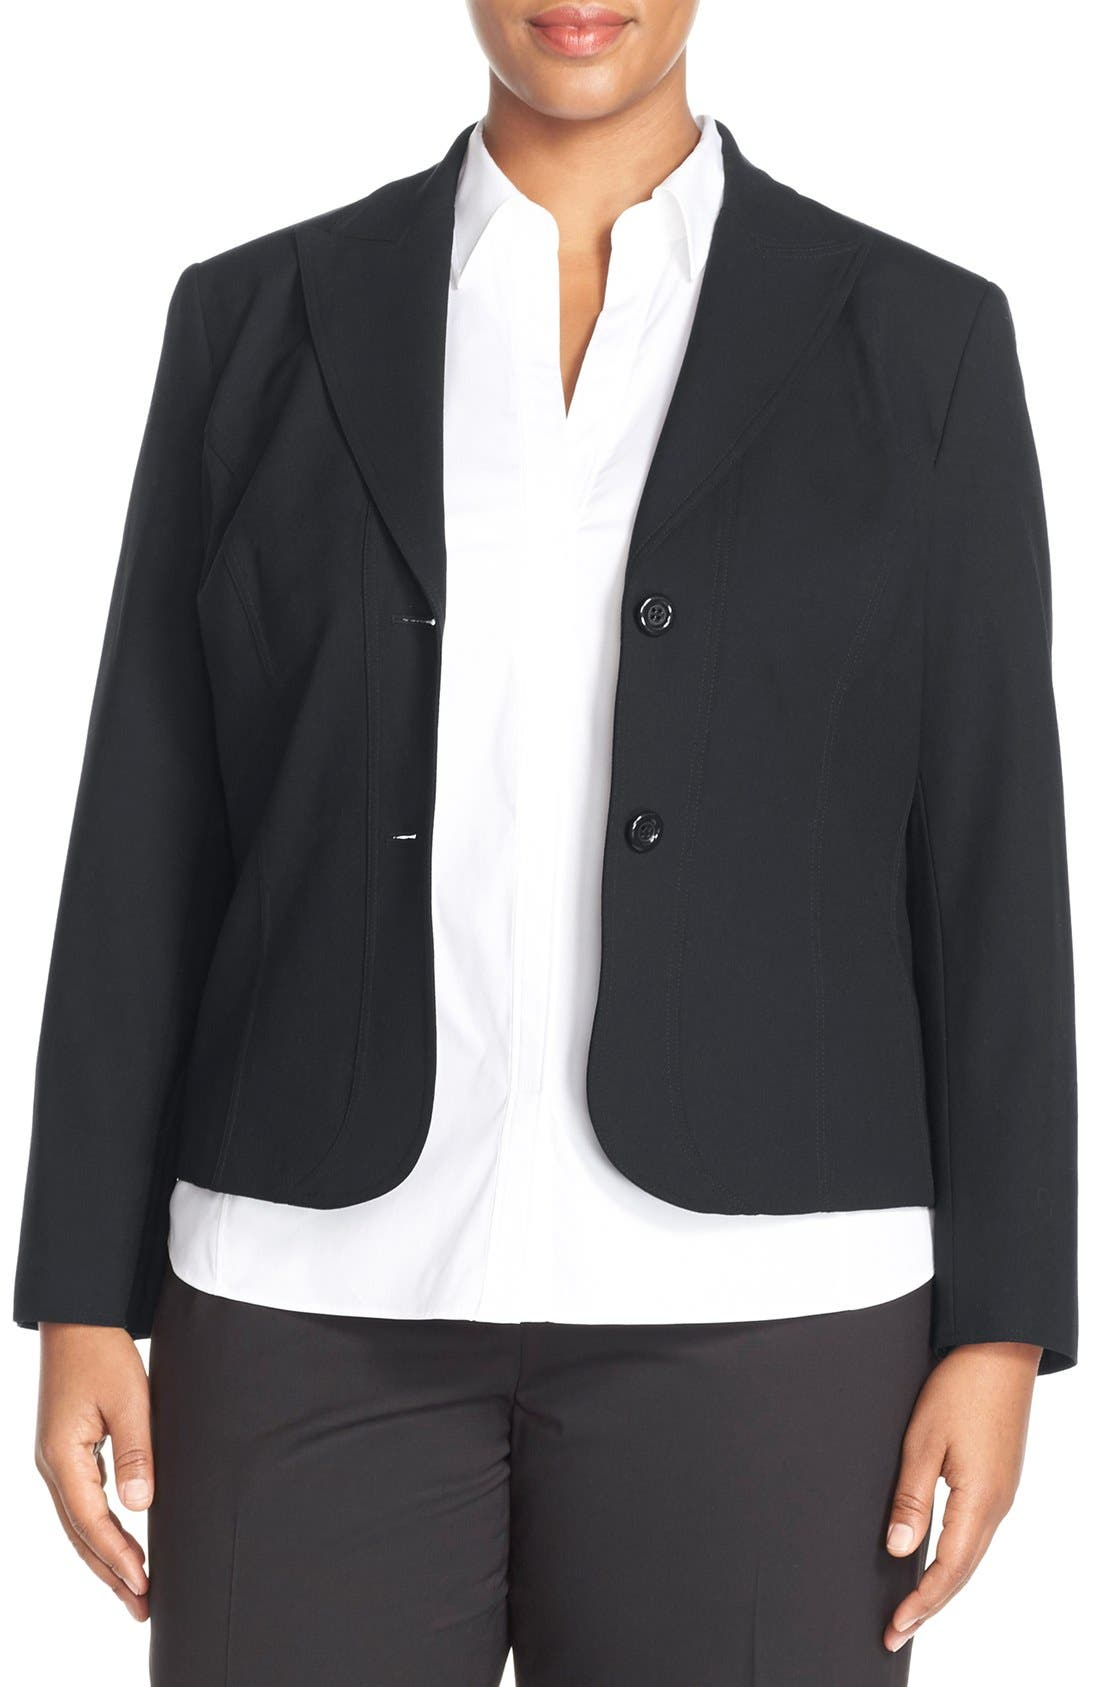 'Gladstone' Stretch Wool Jacket,                             Main thumbnail 1, color,                             NAVY